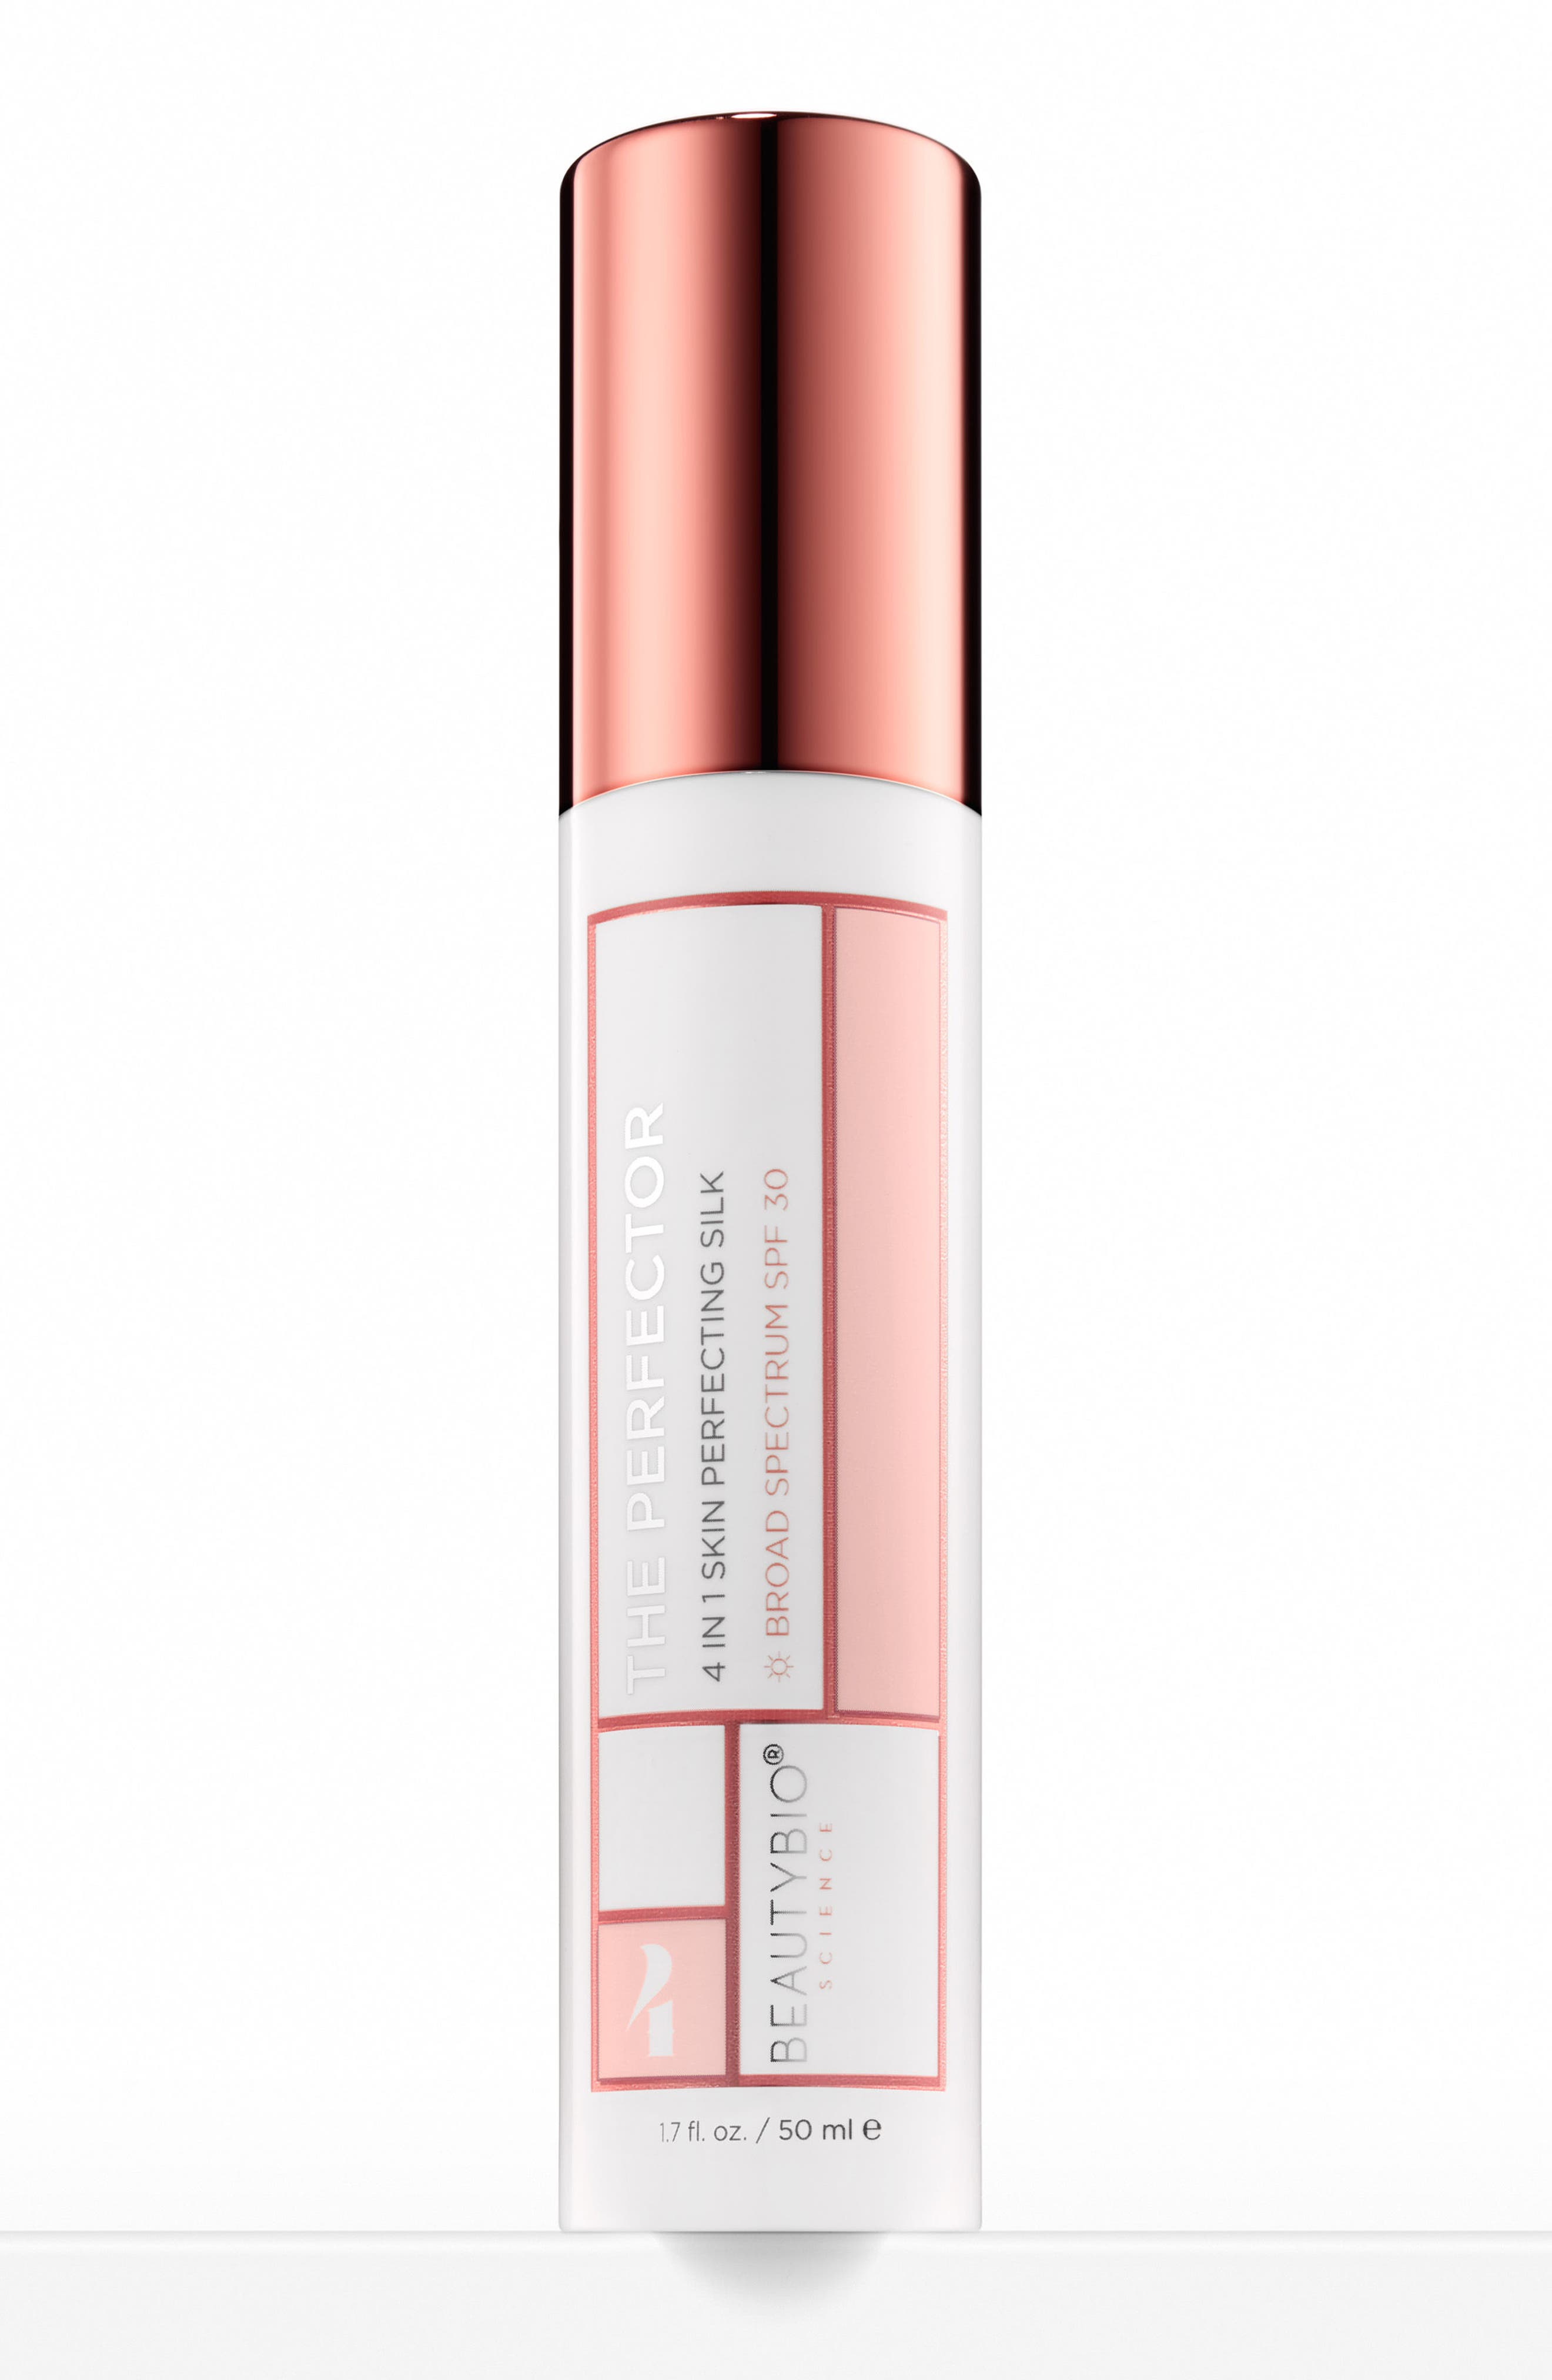 The Perfector 4-in-1 Skin Perfecting Silk SPF 30,                             Main thumbnail 1, color,                             No Color